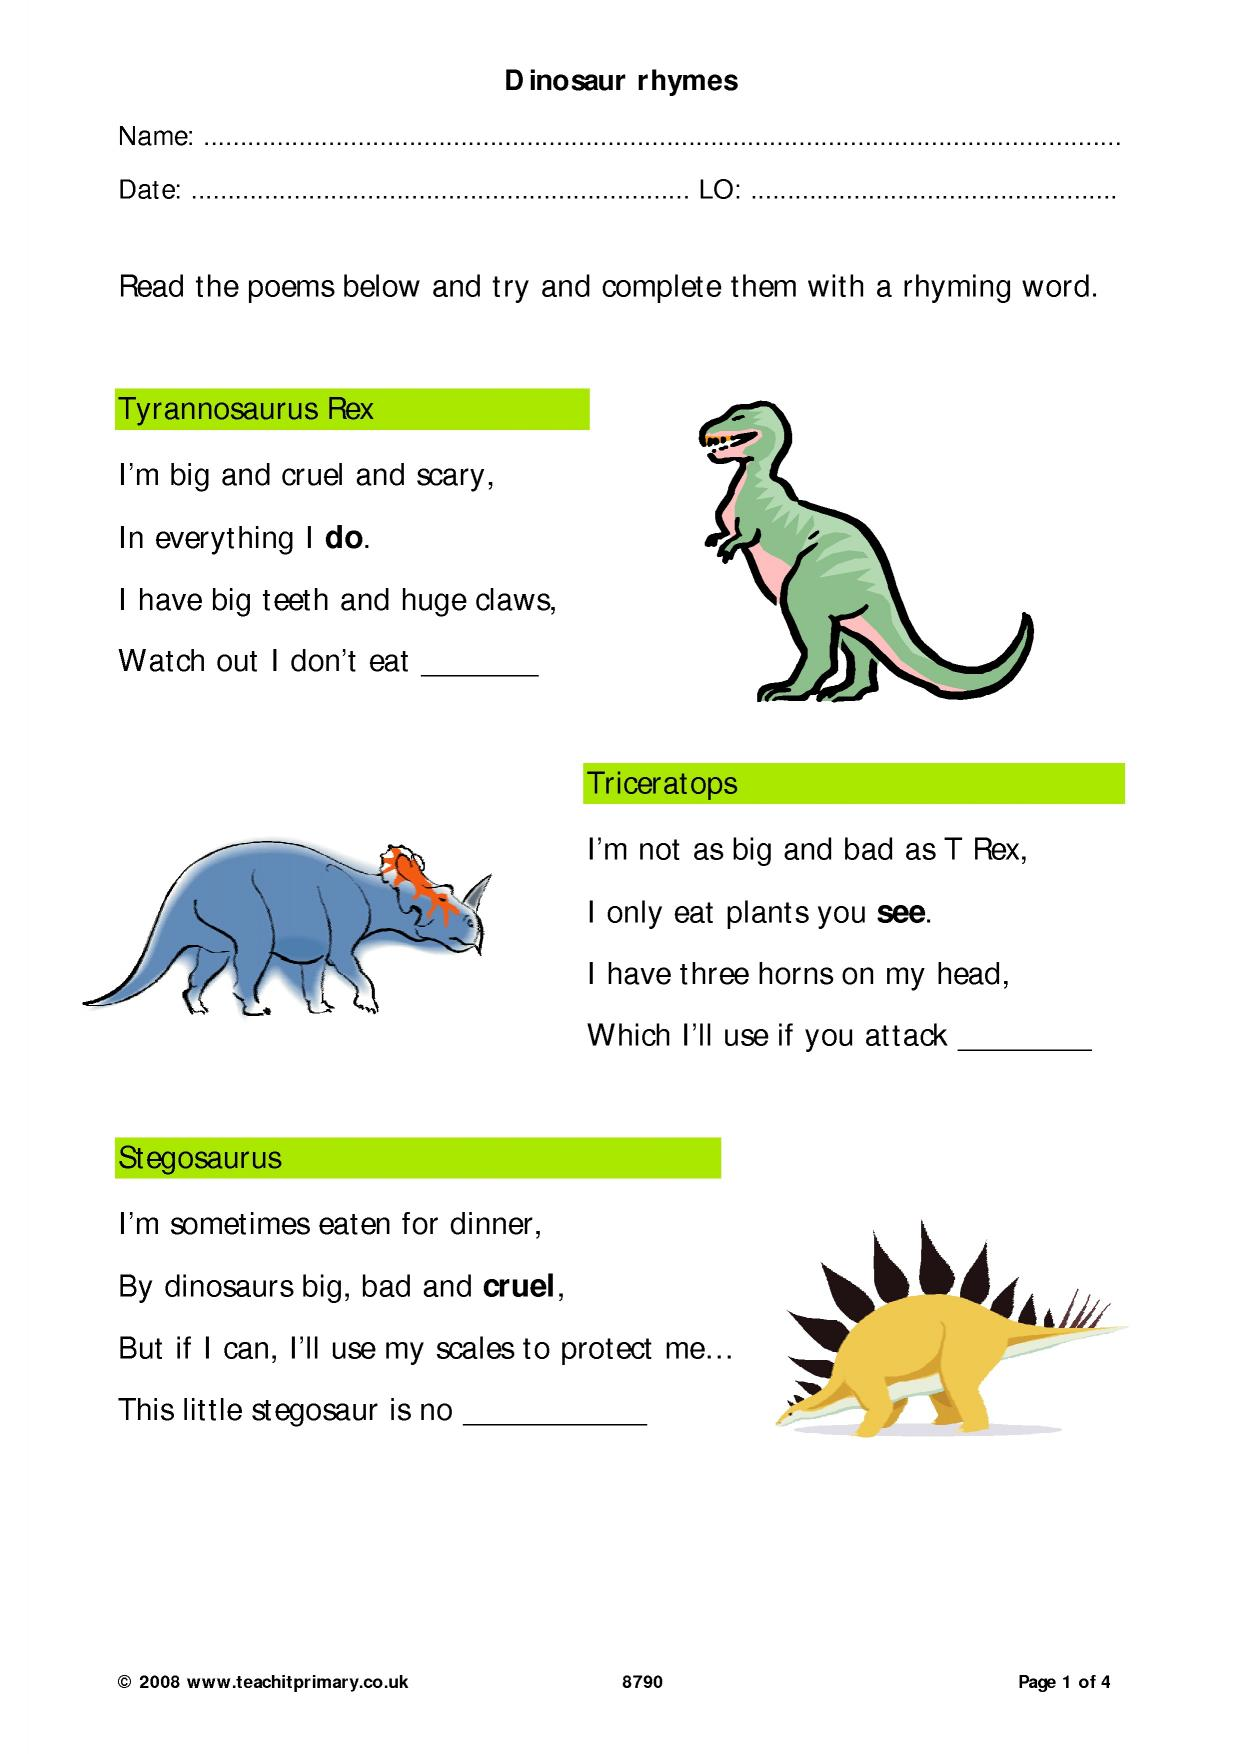 Writing composition teaching resources for ks2 teachit